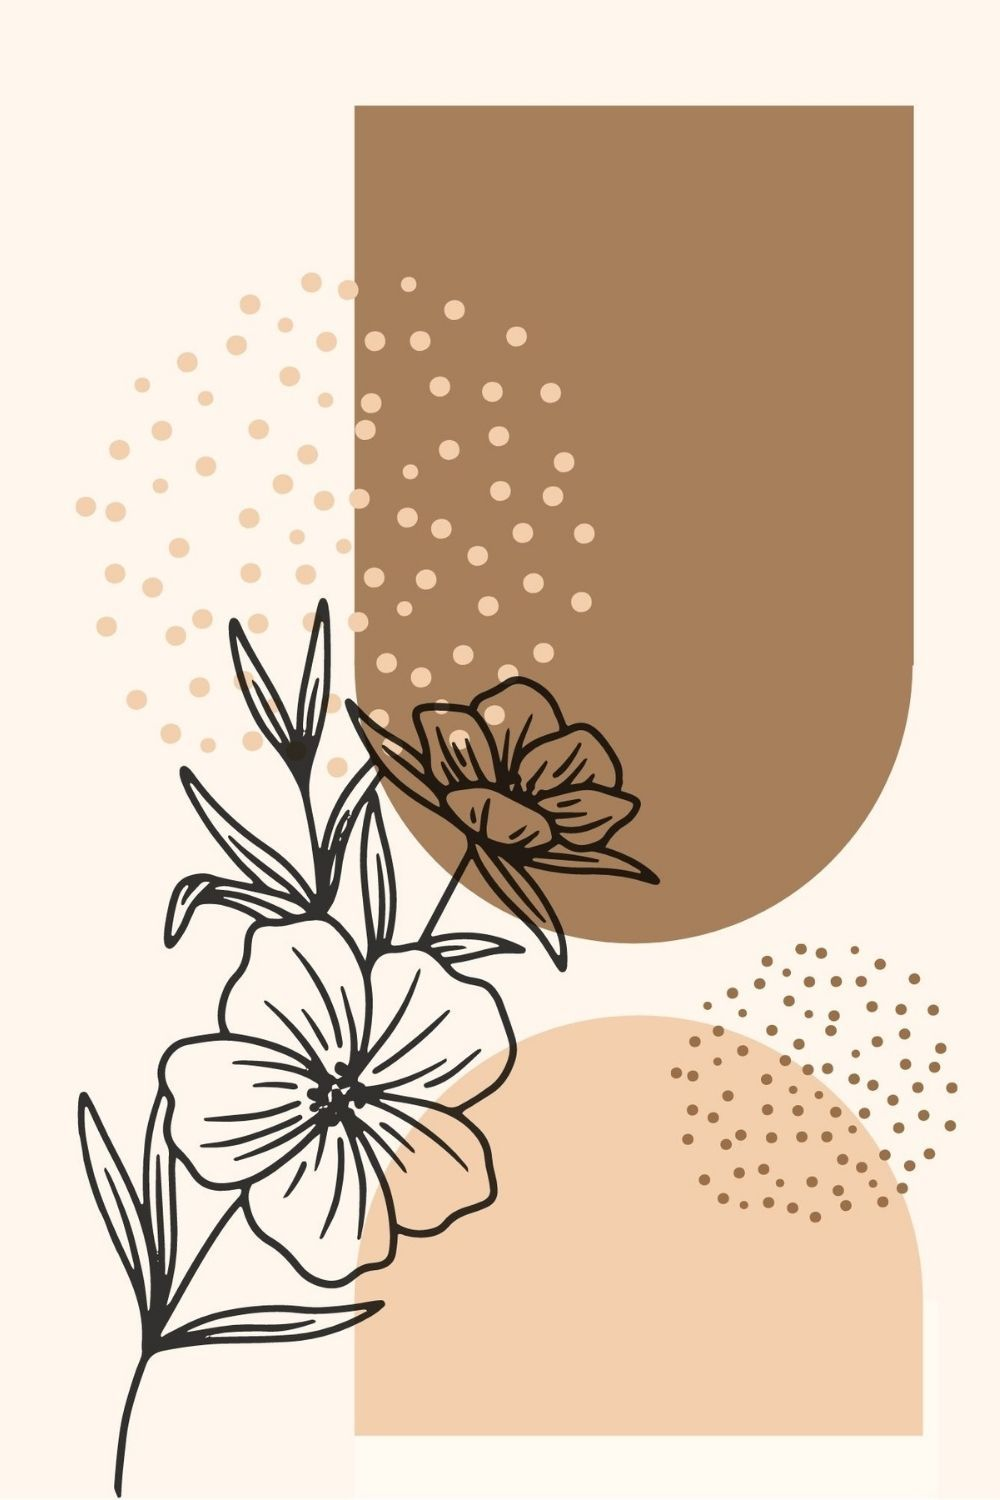 Wall digital print in boho style with abstract shapes and minimalist flowers